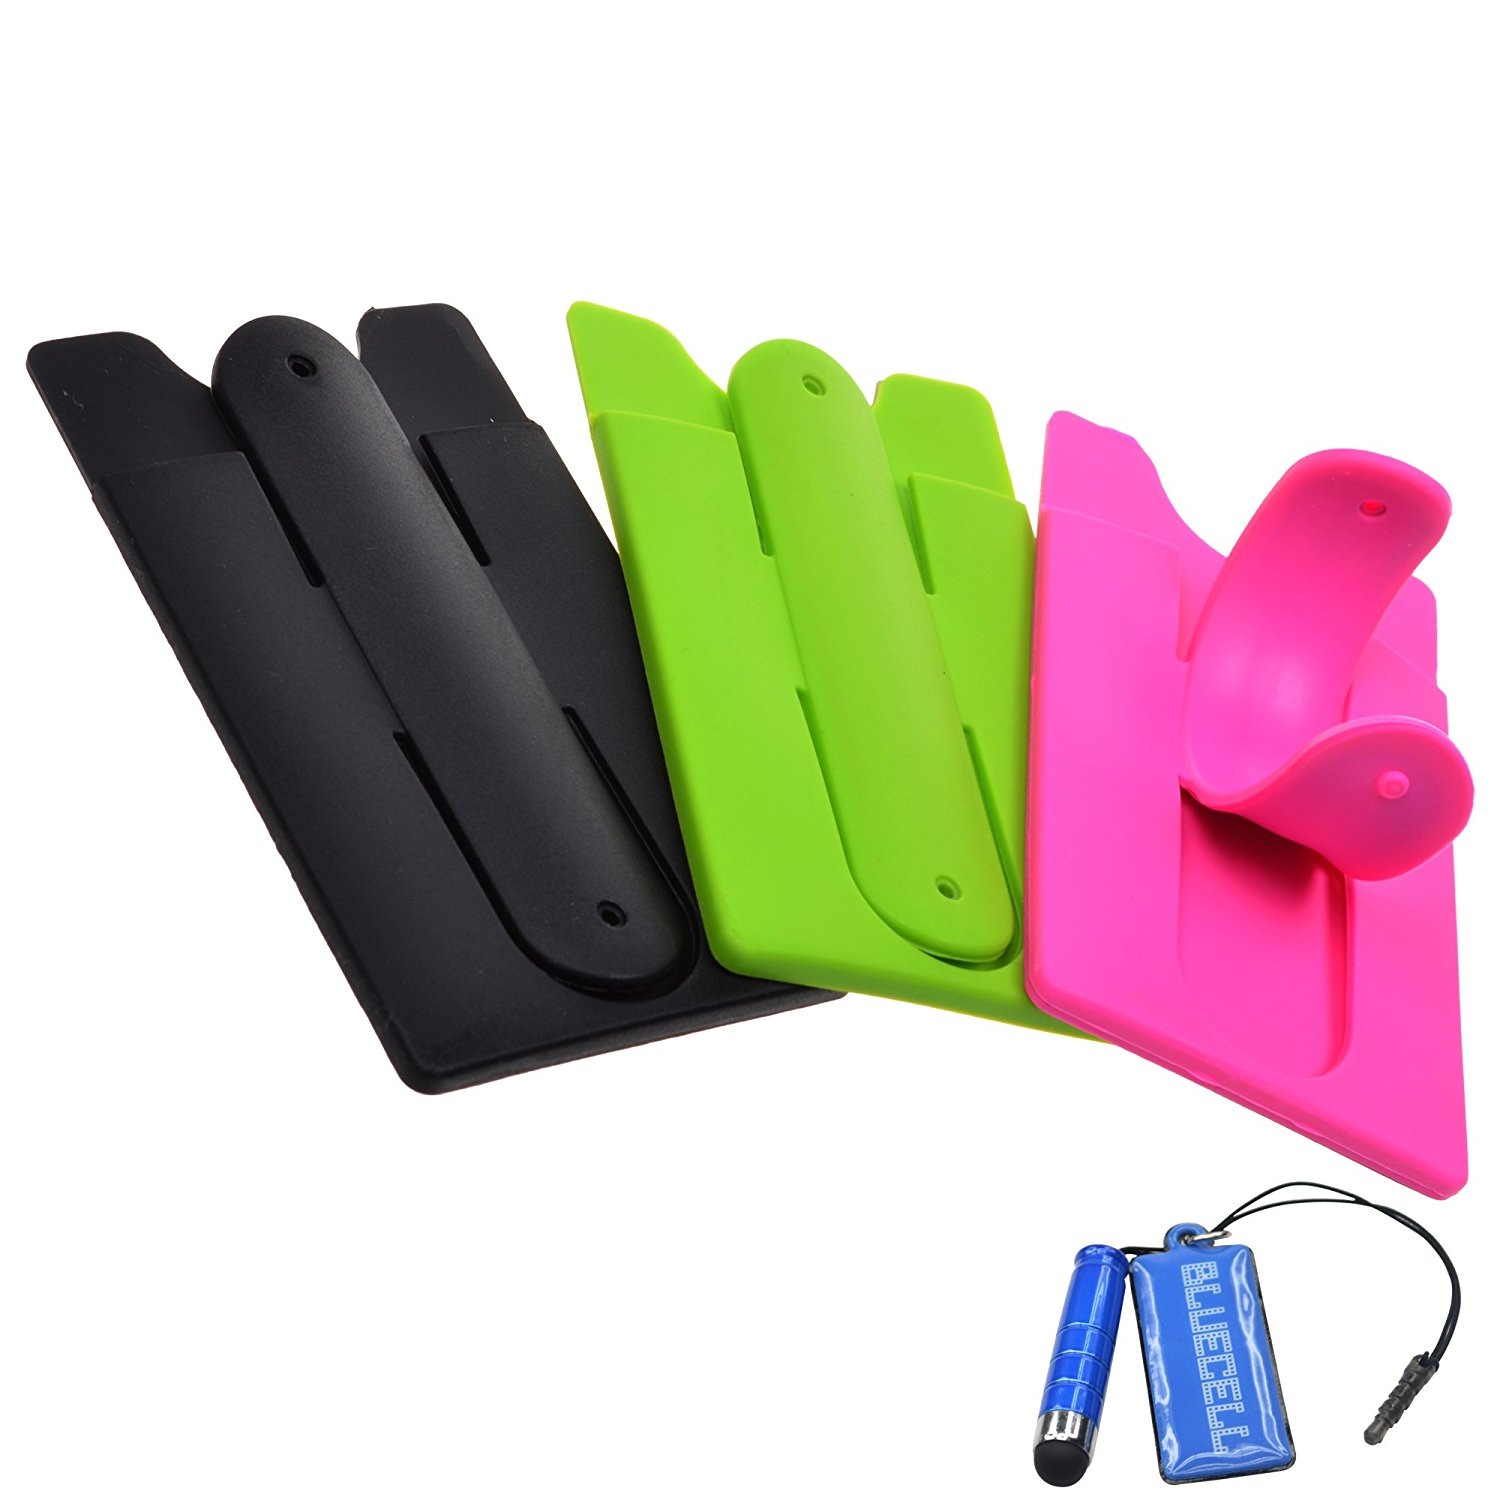 BCP 3pcs Black & Pink & Green Color Silicone Self Adhesive Mobile Phone Stand Holder with Card Case